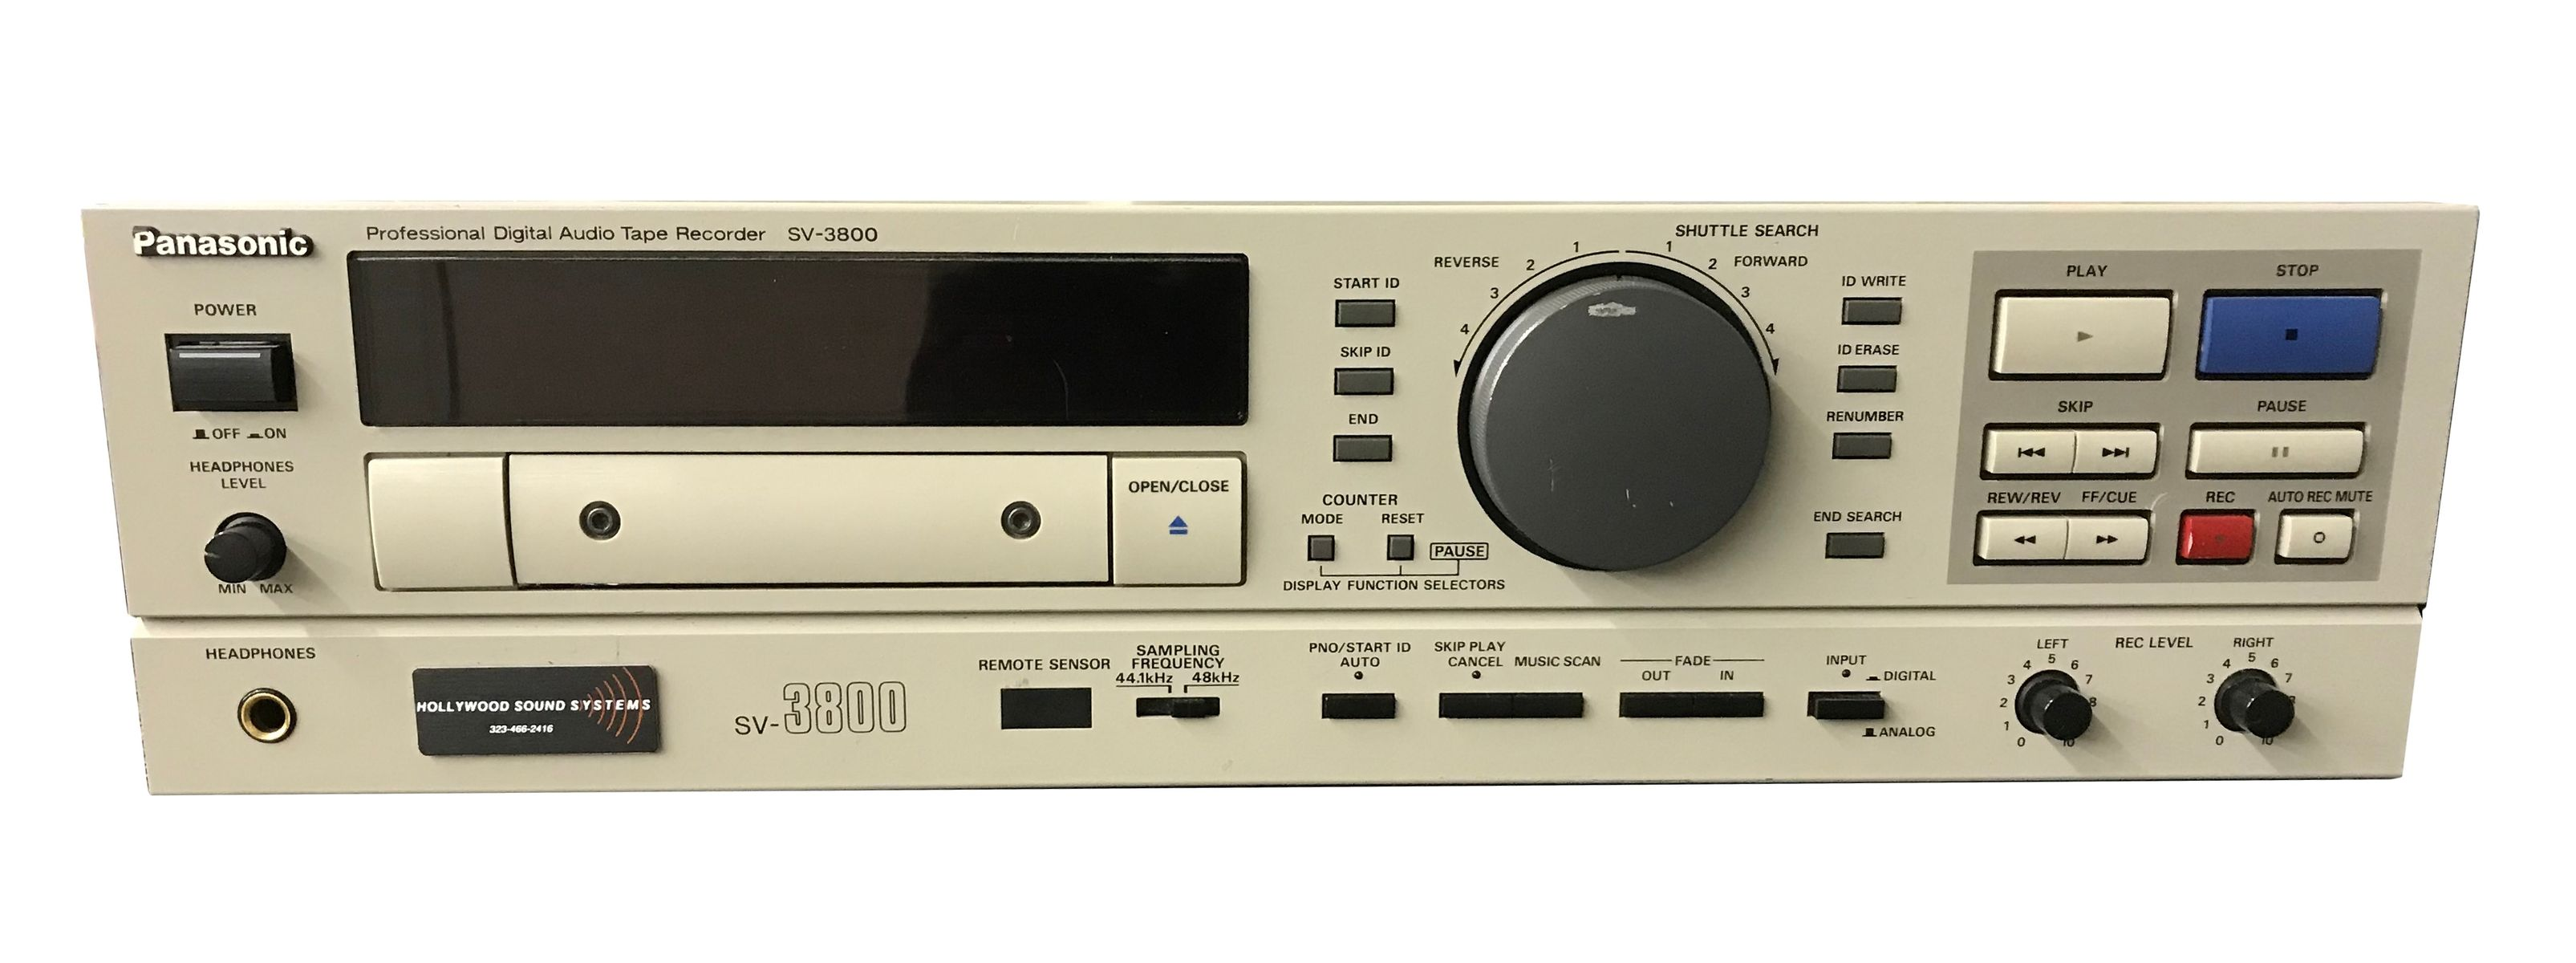 Panasonic SV-3800 DAT Recorder is available at Hollywood Sound Systems